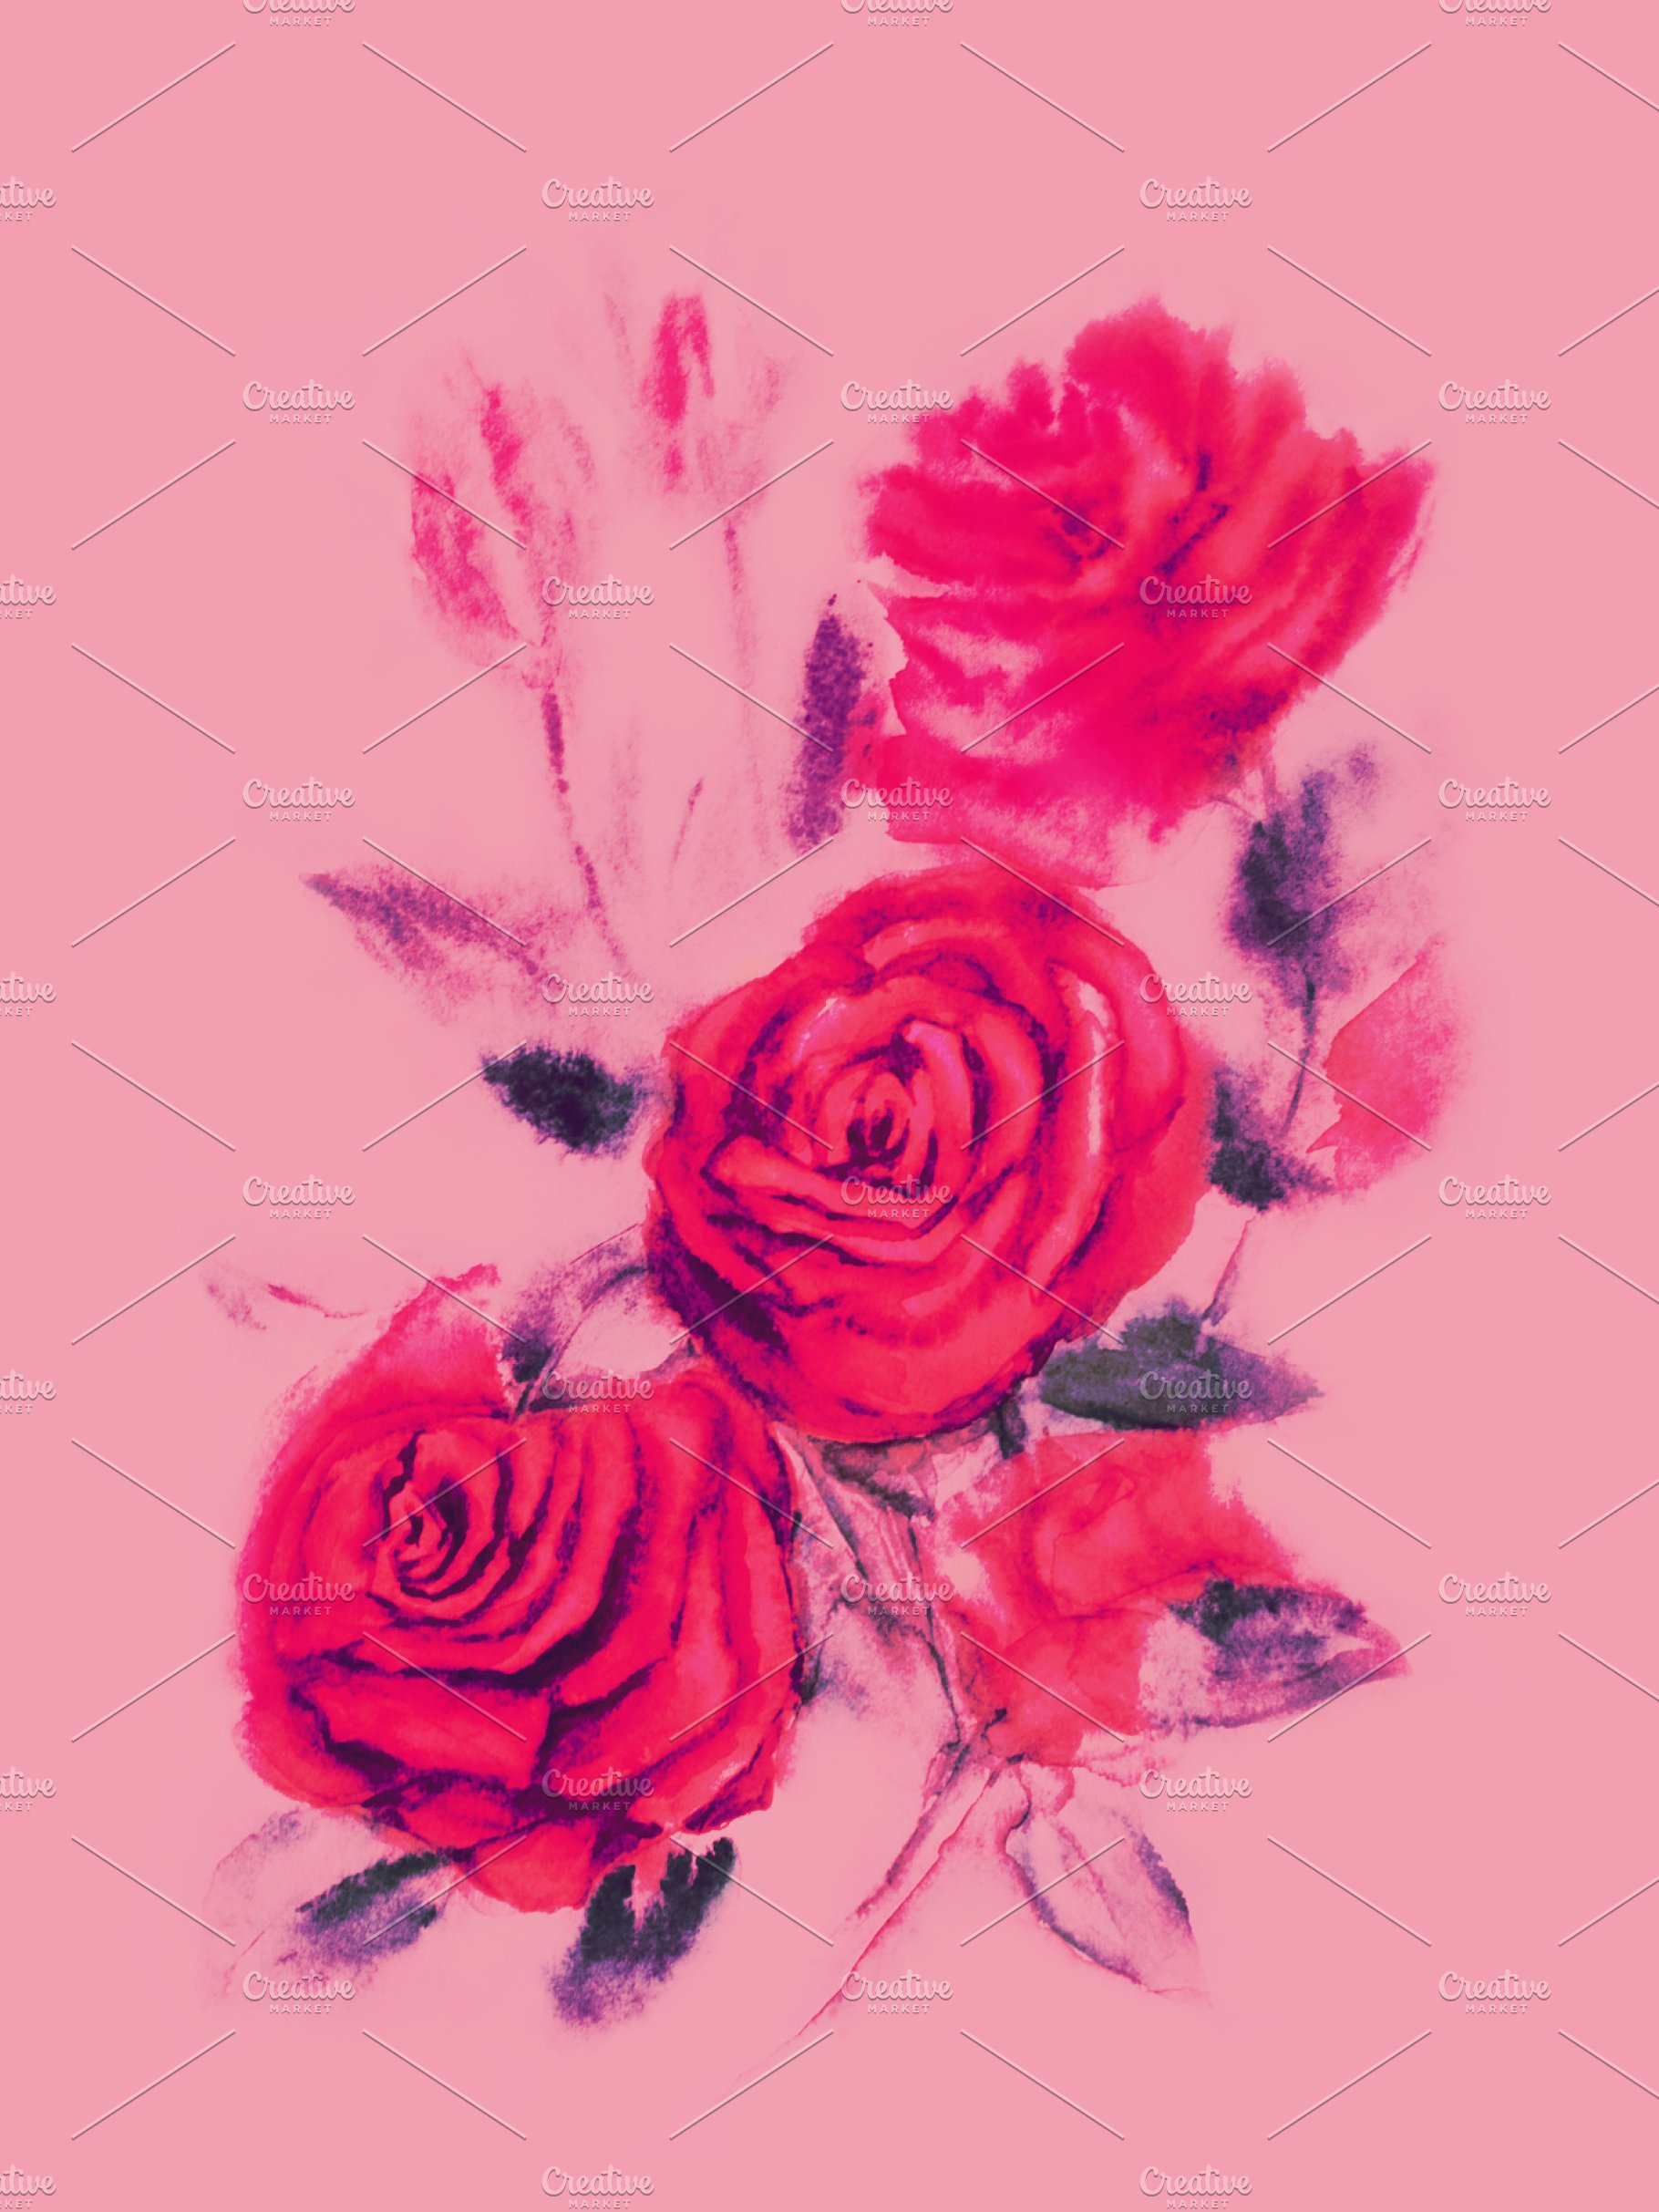 Red Roses Watercolor Painting On Pink Background High Quality